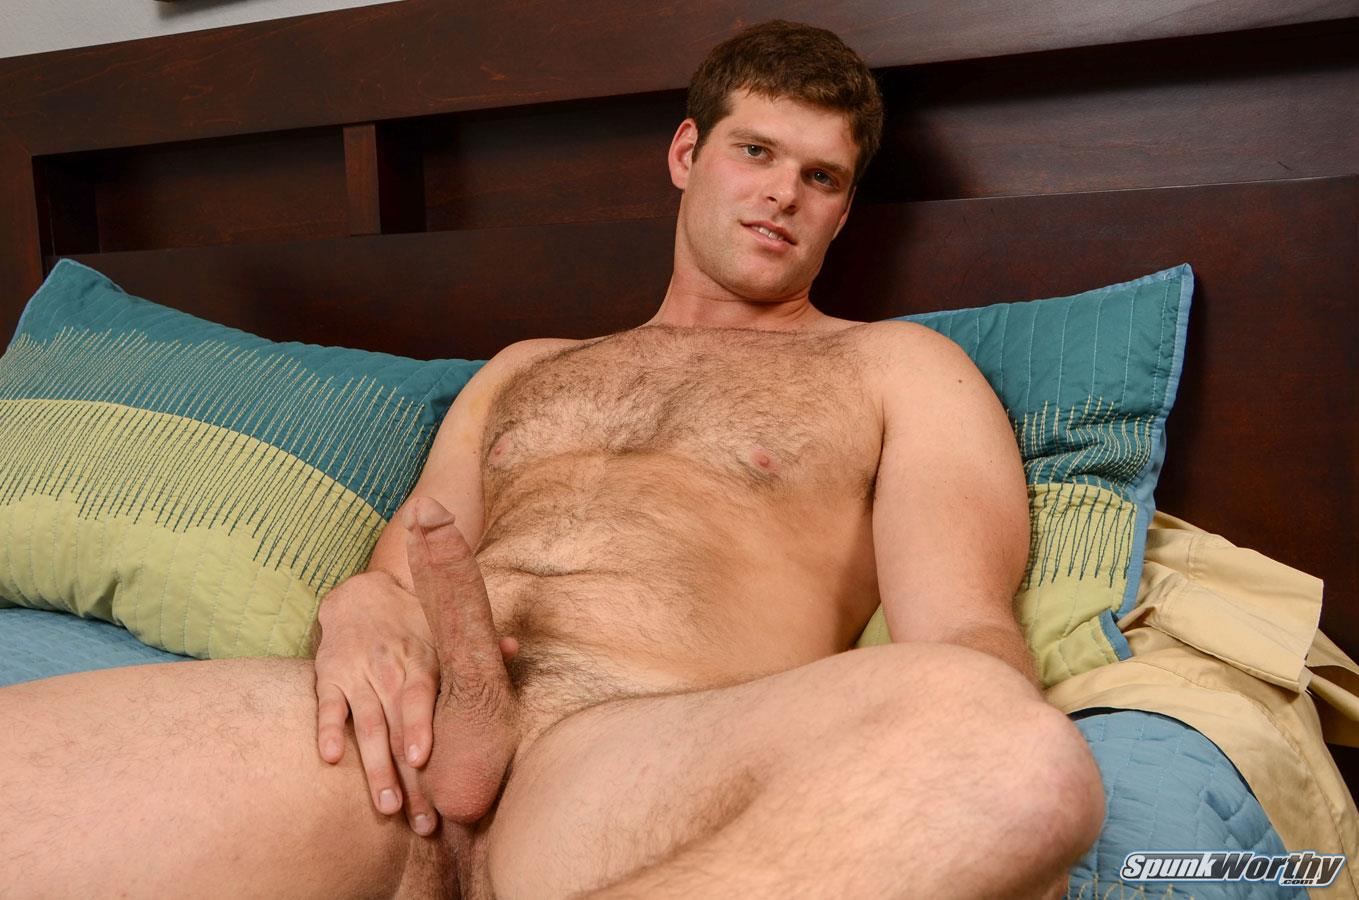 SpunkWorthy Jake Straight Hairy Navy Bear Cub Jerking Off Amateur Gay Porn 08